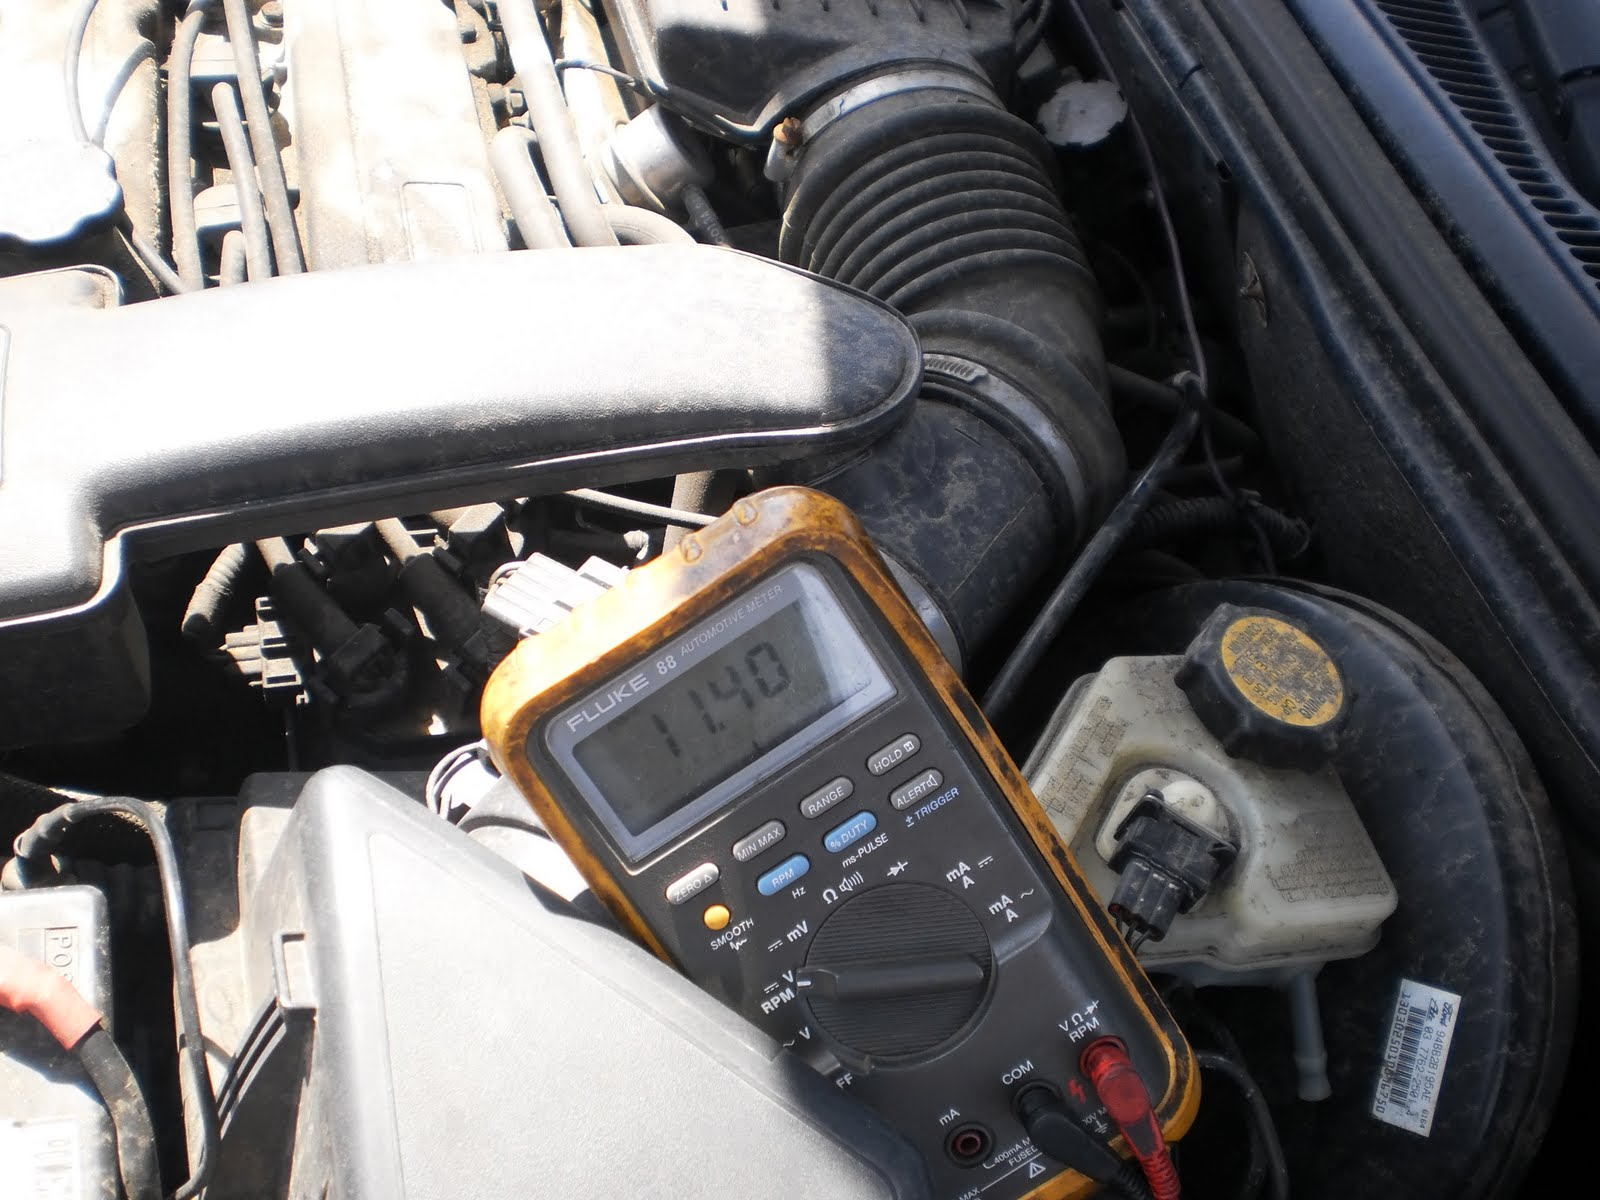 jwr automotive diagnostics 1996 ford contour my meter still stuck in c100 starts to battery voltage and every voltage in between bingo i pull the fuse out and my first clue is that it pulls out